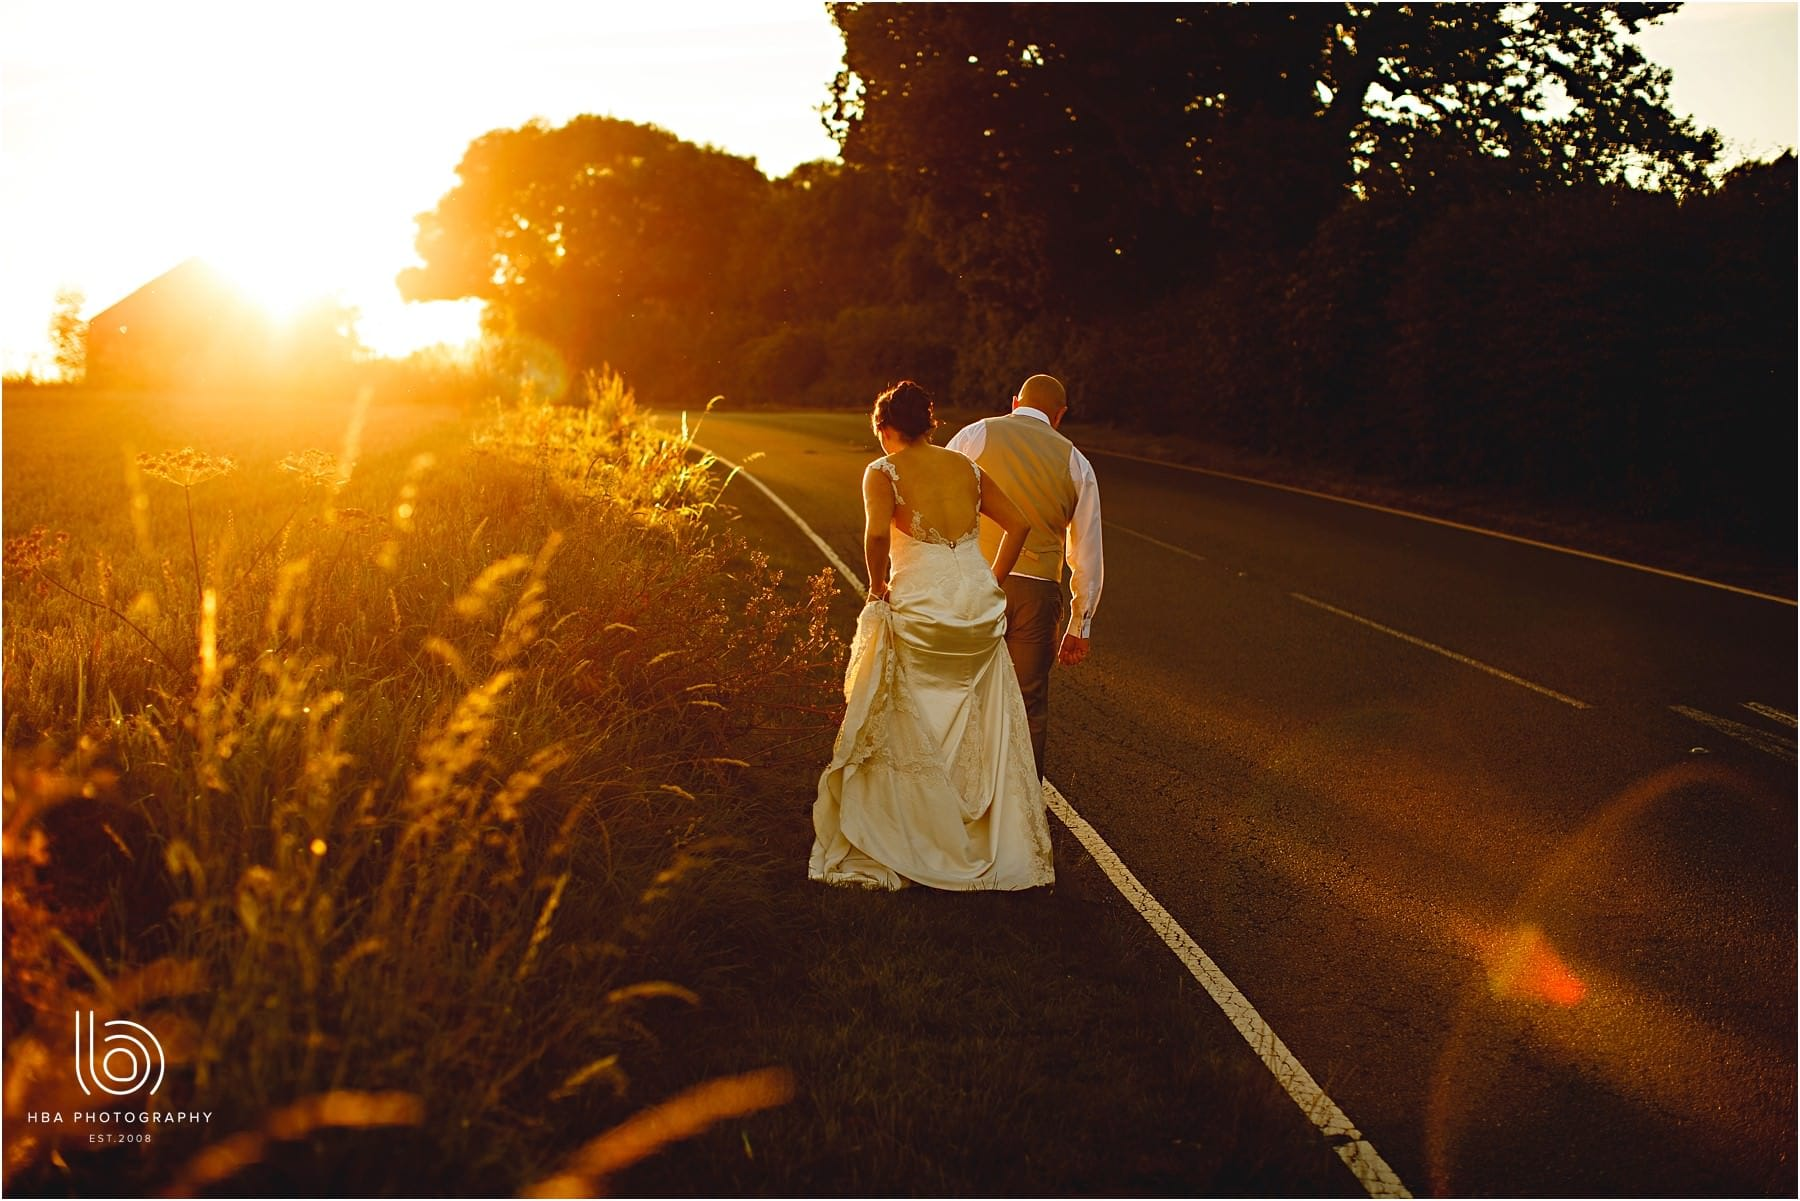 the bride & groom walking up the road in the golden sun